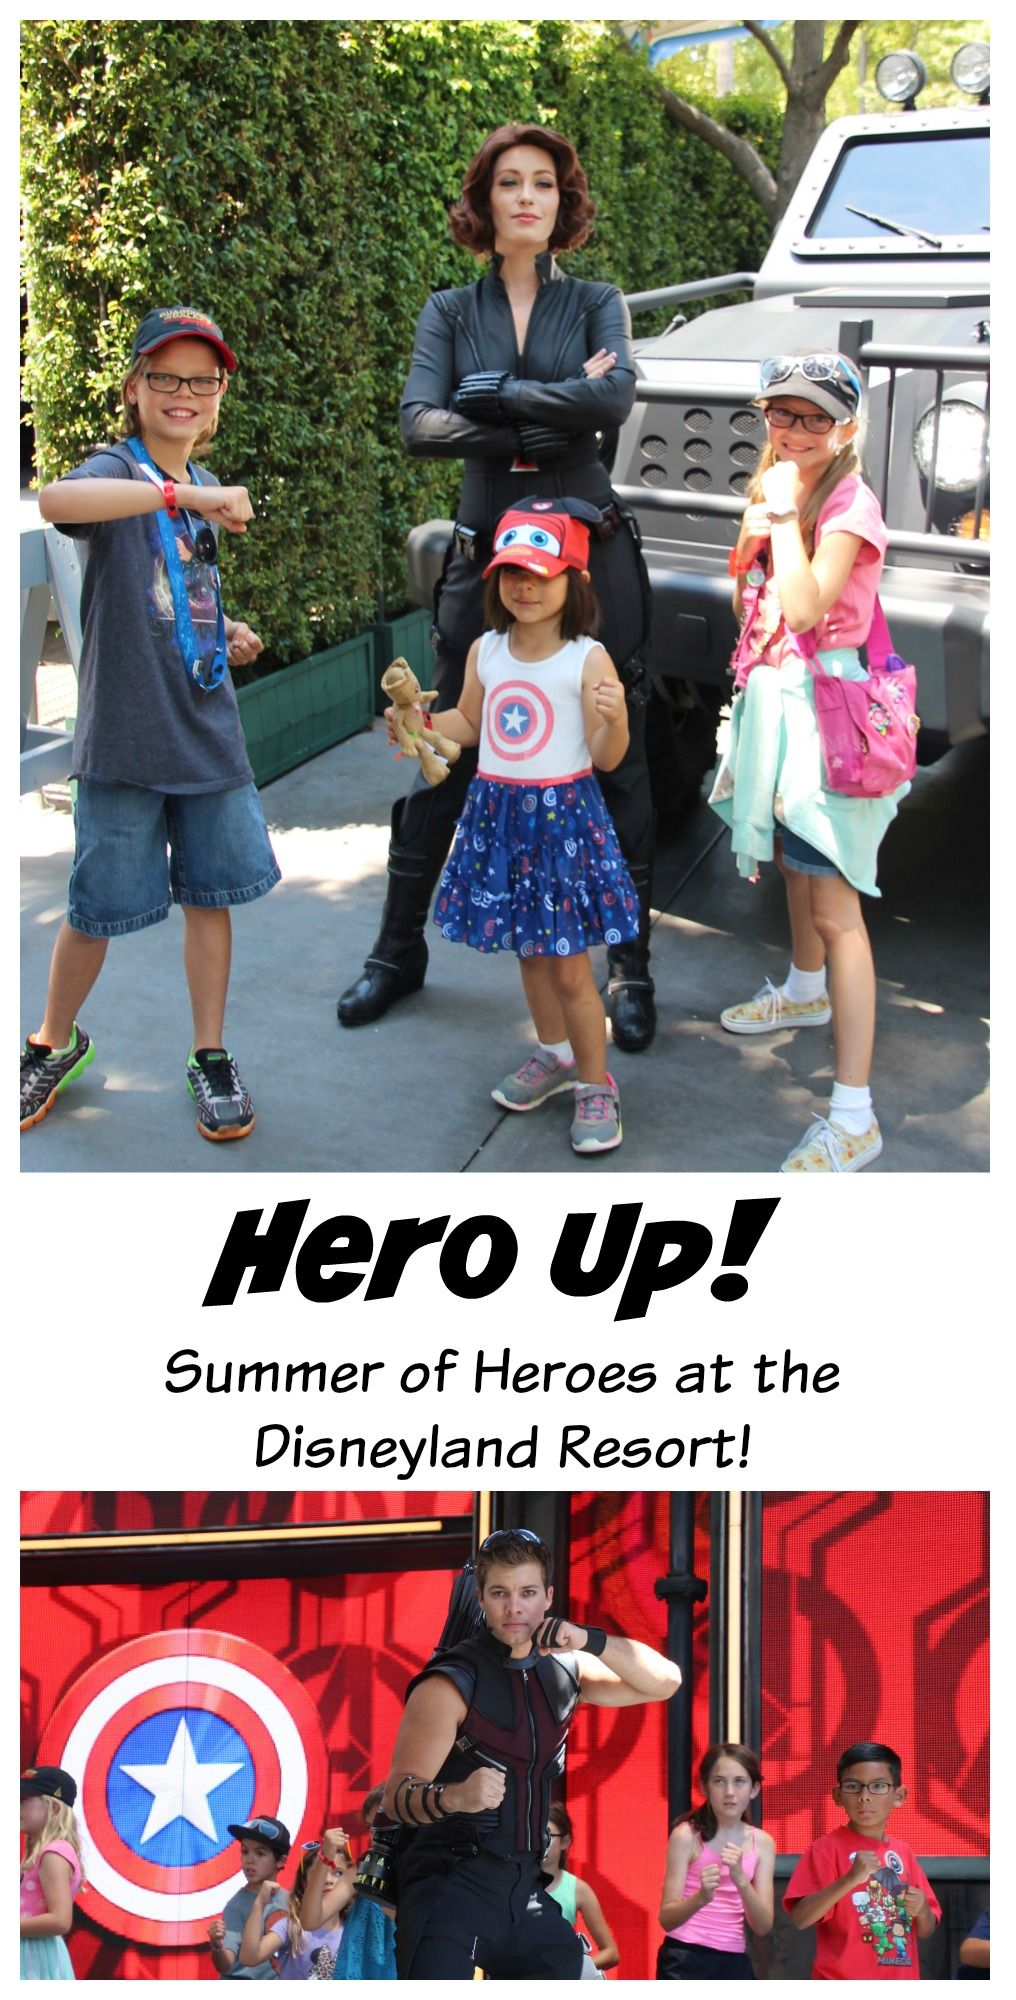 ( ad ) Hero up at Disney California Park!  Disneyland Resort is celebrating Summer of Heroes.  Meet and greet with Groot, Black Widow, Spiderman, and more!  Ride Guardians of the Galaxy Mission Breakout and eat delicious Disney and Marvel themed treats!